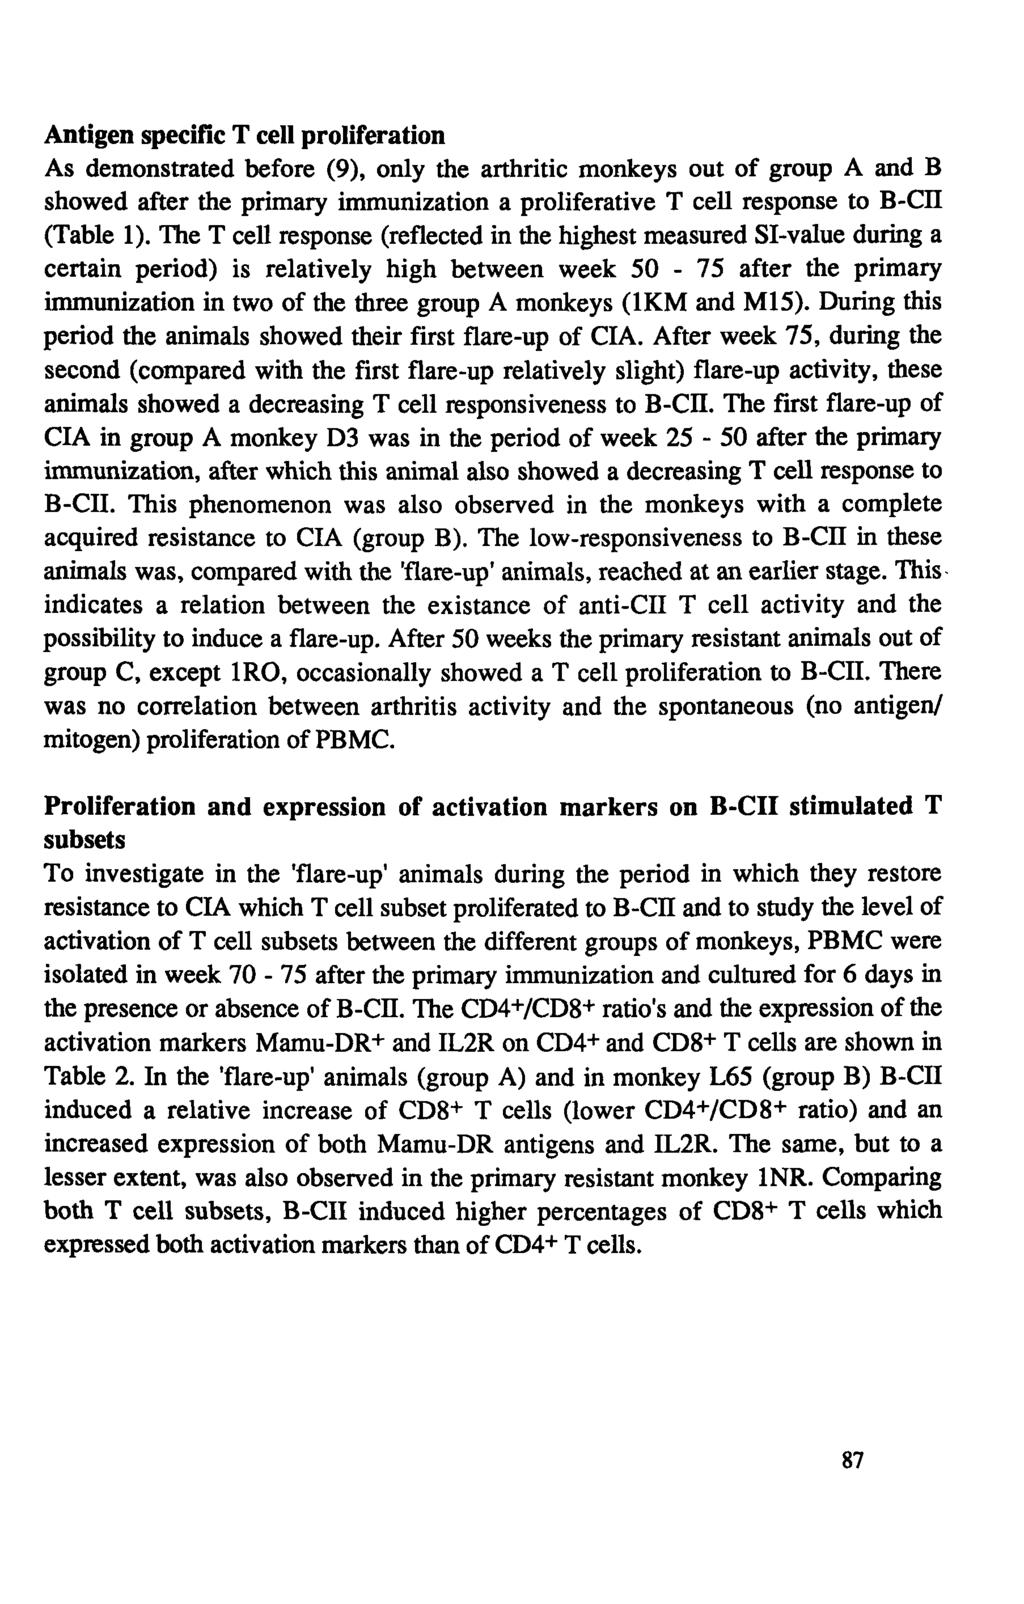 Antigen specific T cell proliferation As demonstrated before (9), only the arthritic monkeys out of group A and B showed after the primary immunization a proliferative T cell response to B-CH (Table